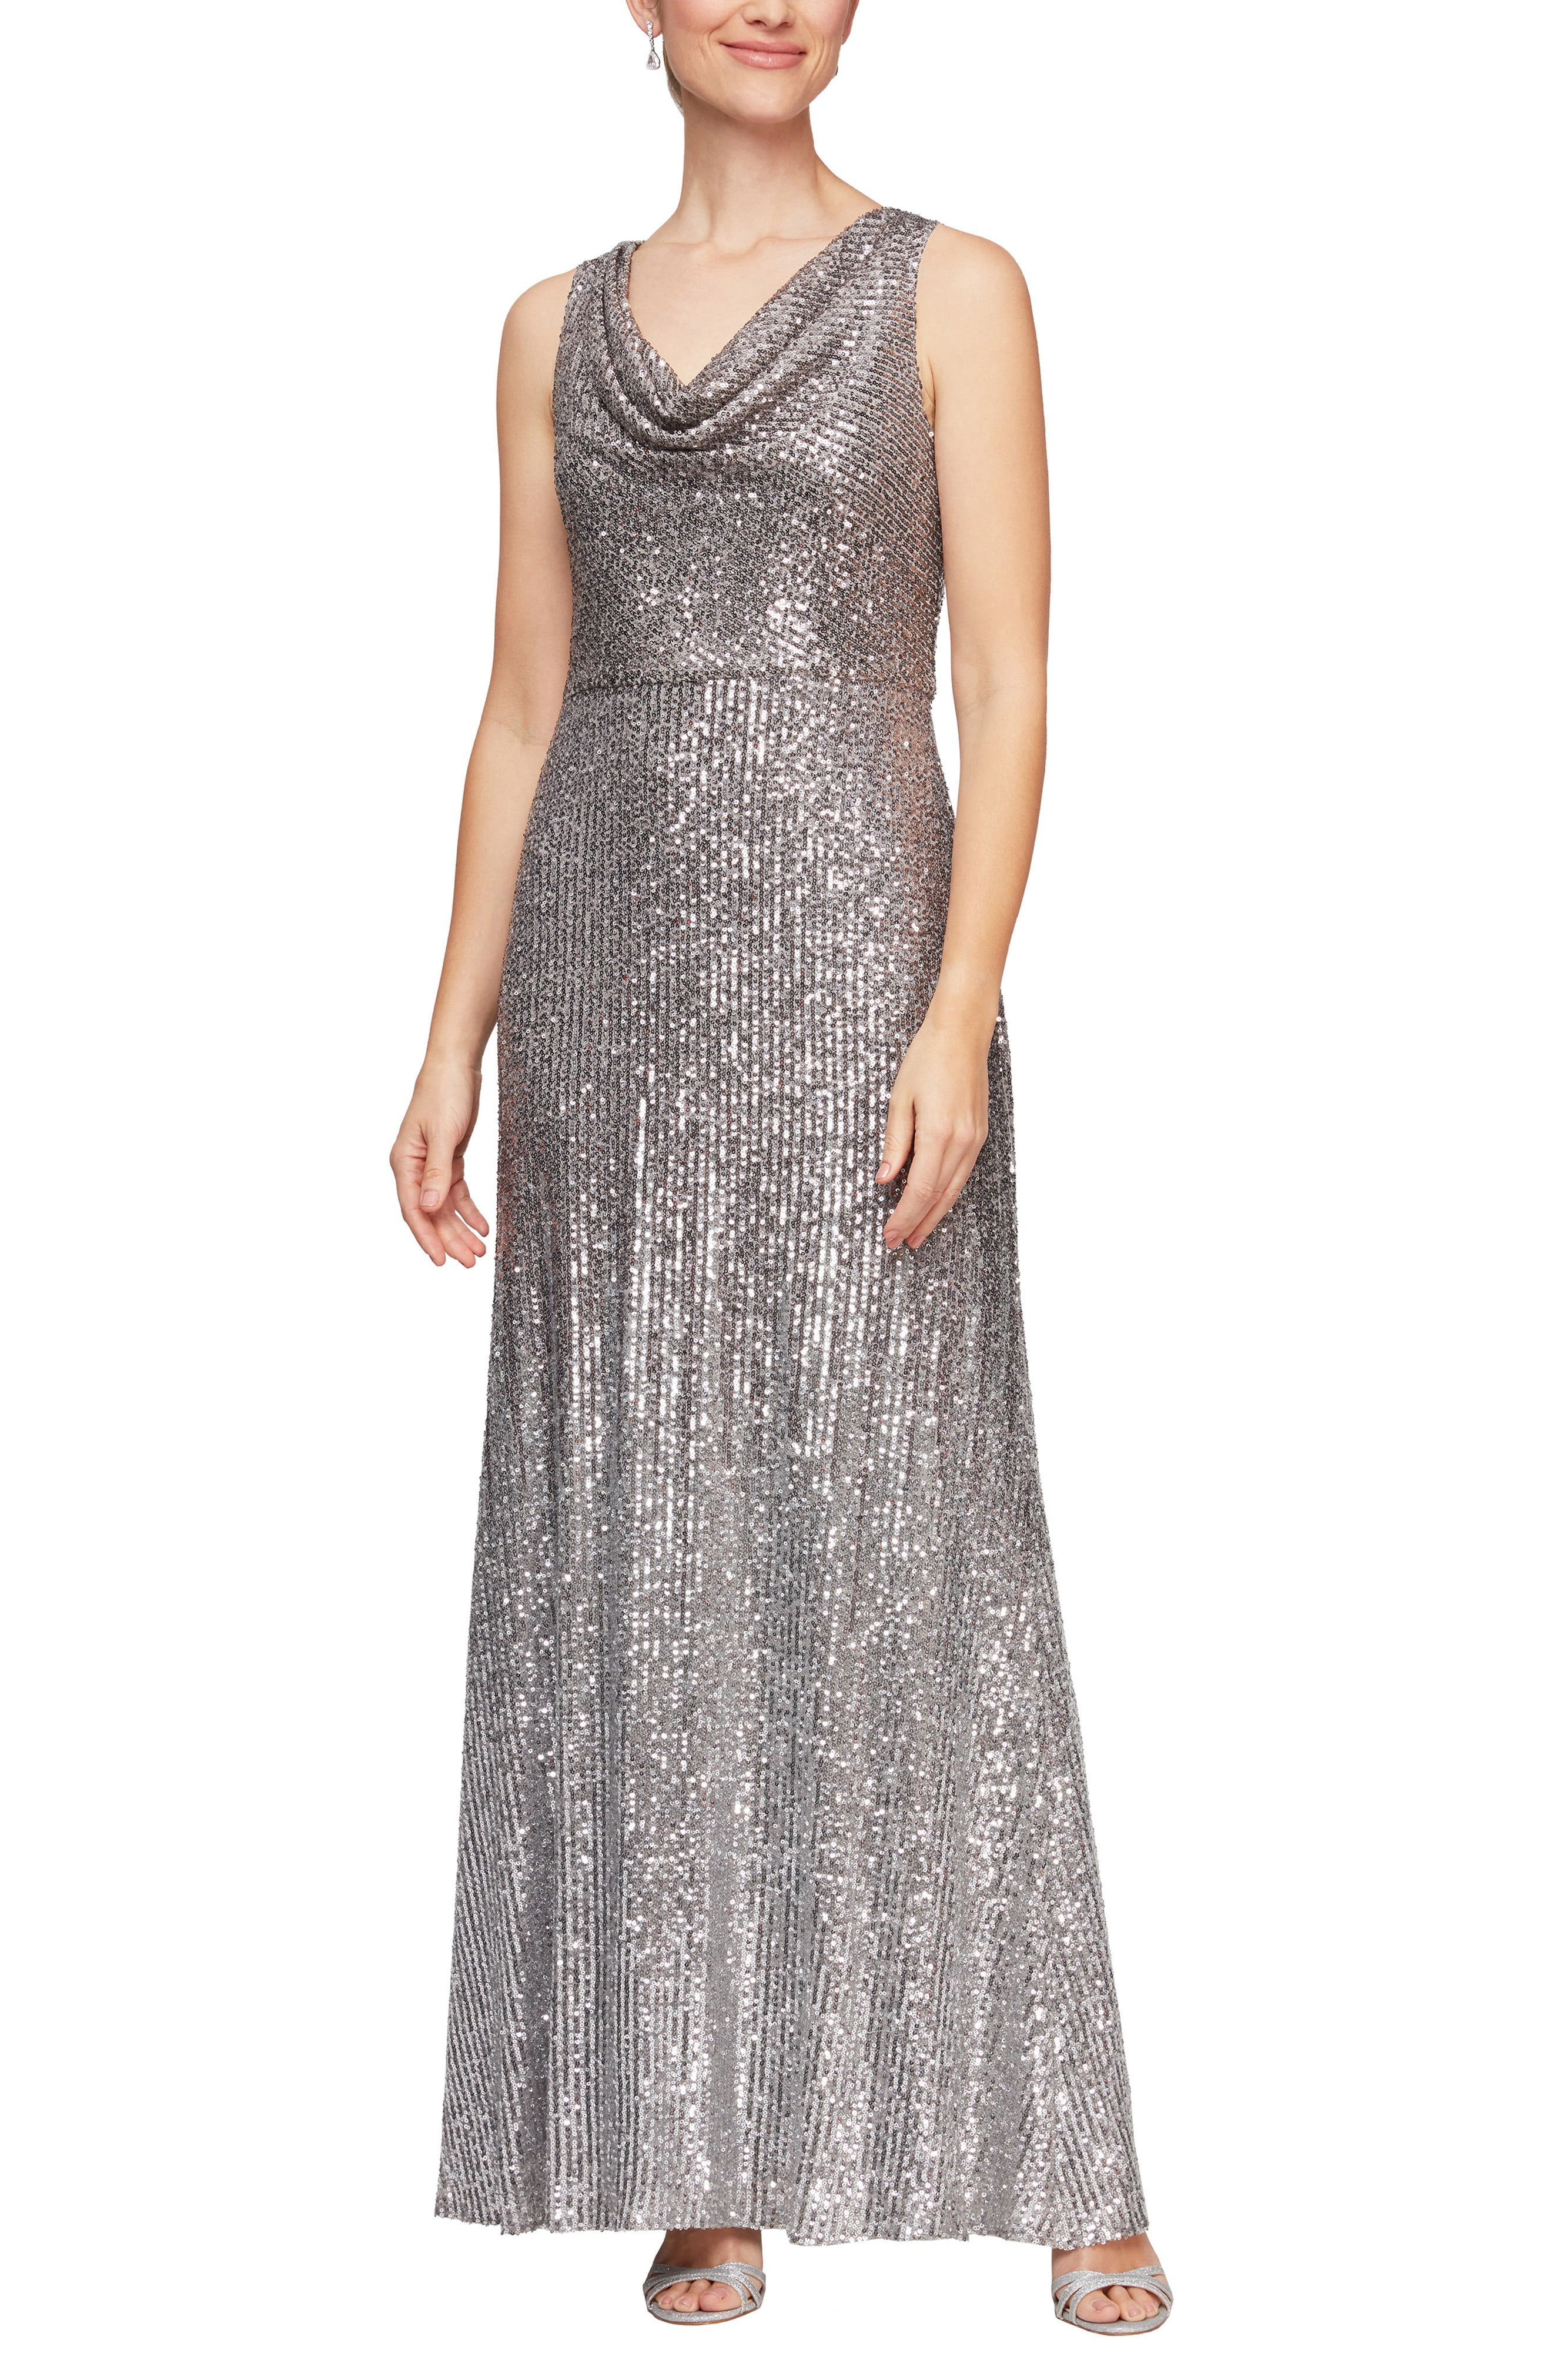 Embody old Hollywood glamour in this sparkling gown featuring a flattering cowl neck guaranteed to bring class and elegance to every occasion. Style Name:Alex Evenings Sequin Cowl Neck A-Line Gown. Style Number: 6157258. Available in stores.